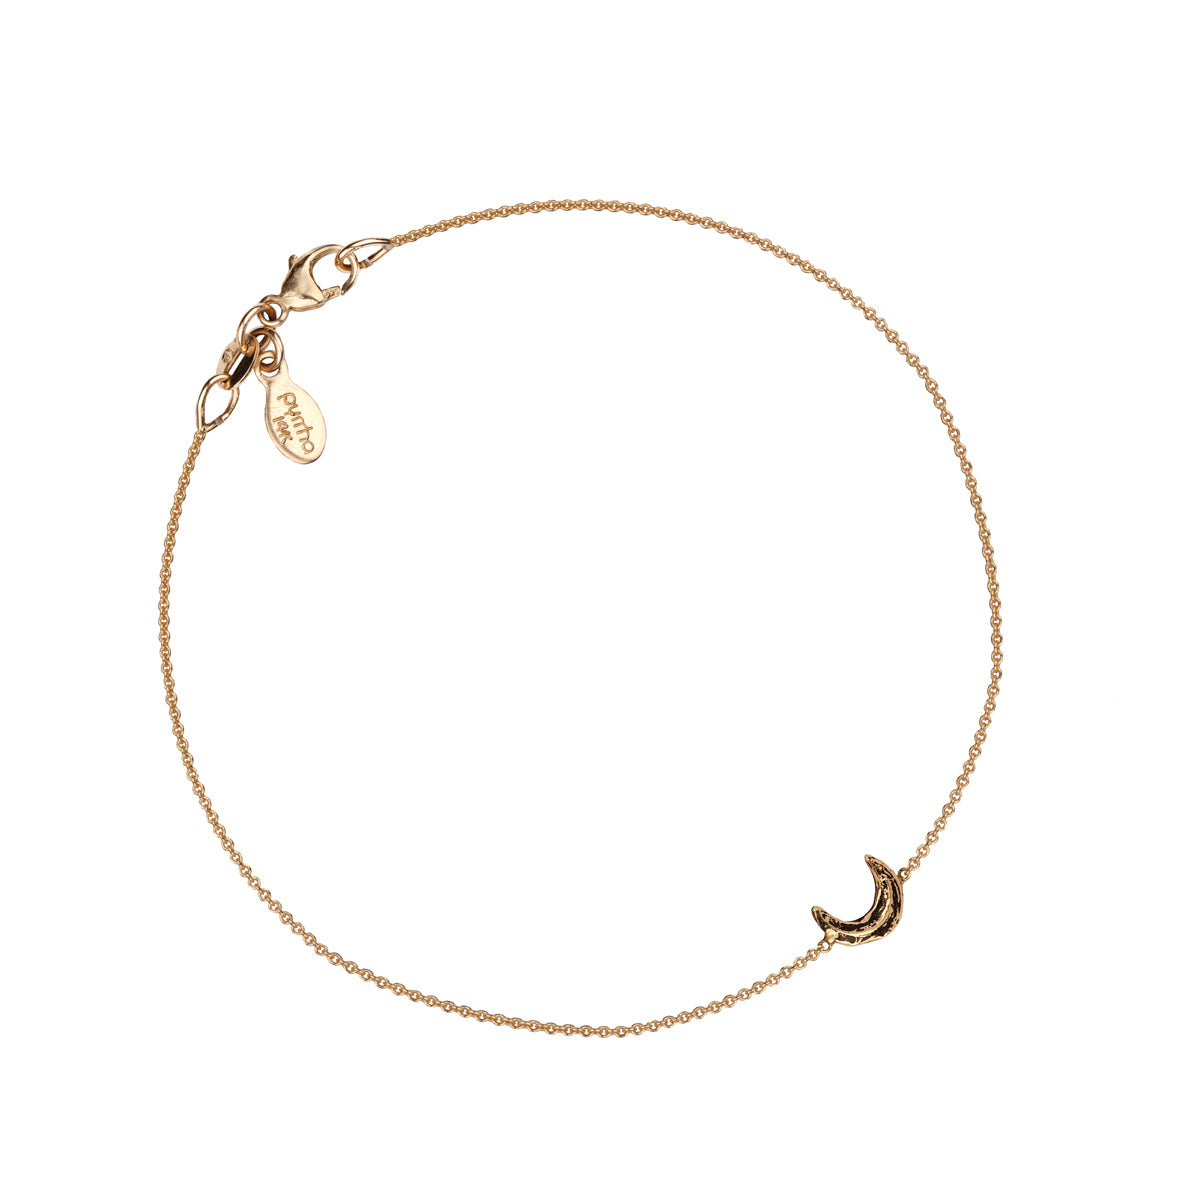 Crescent Moon 14K Gold Symbol Chain Bracelet